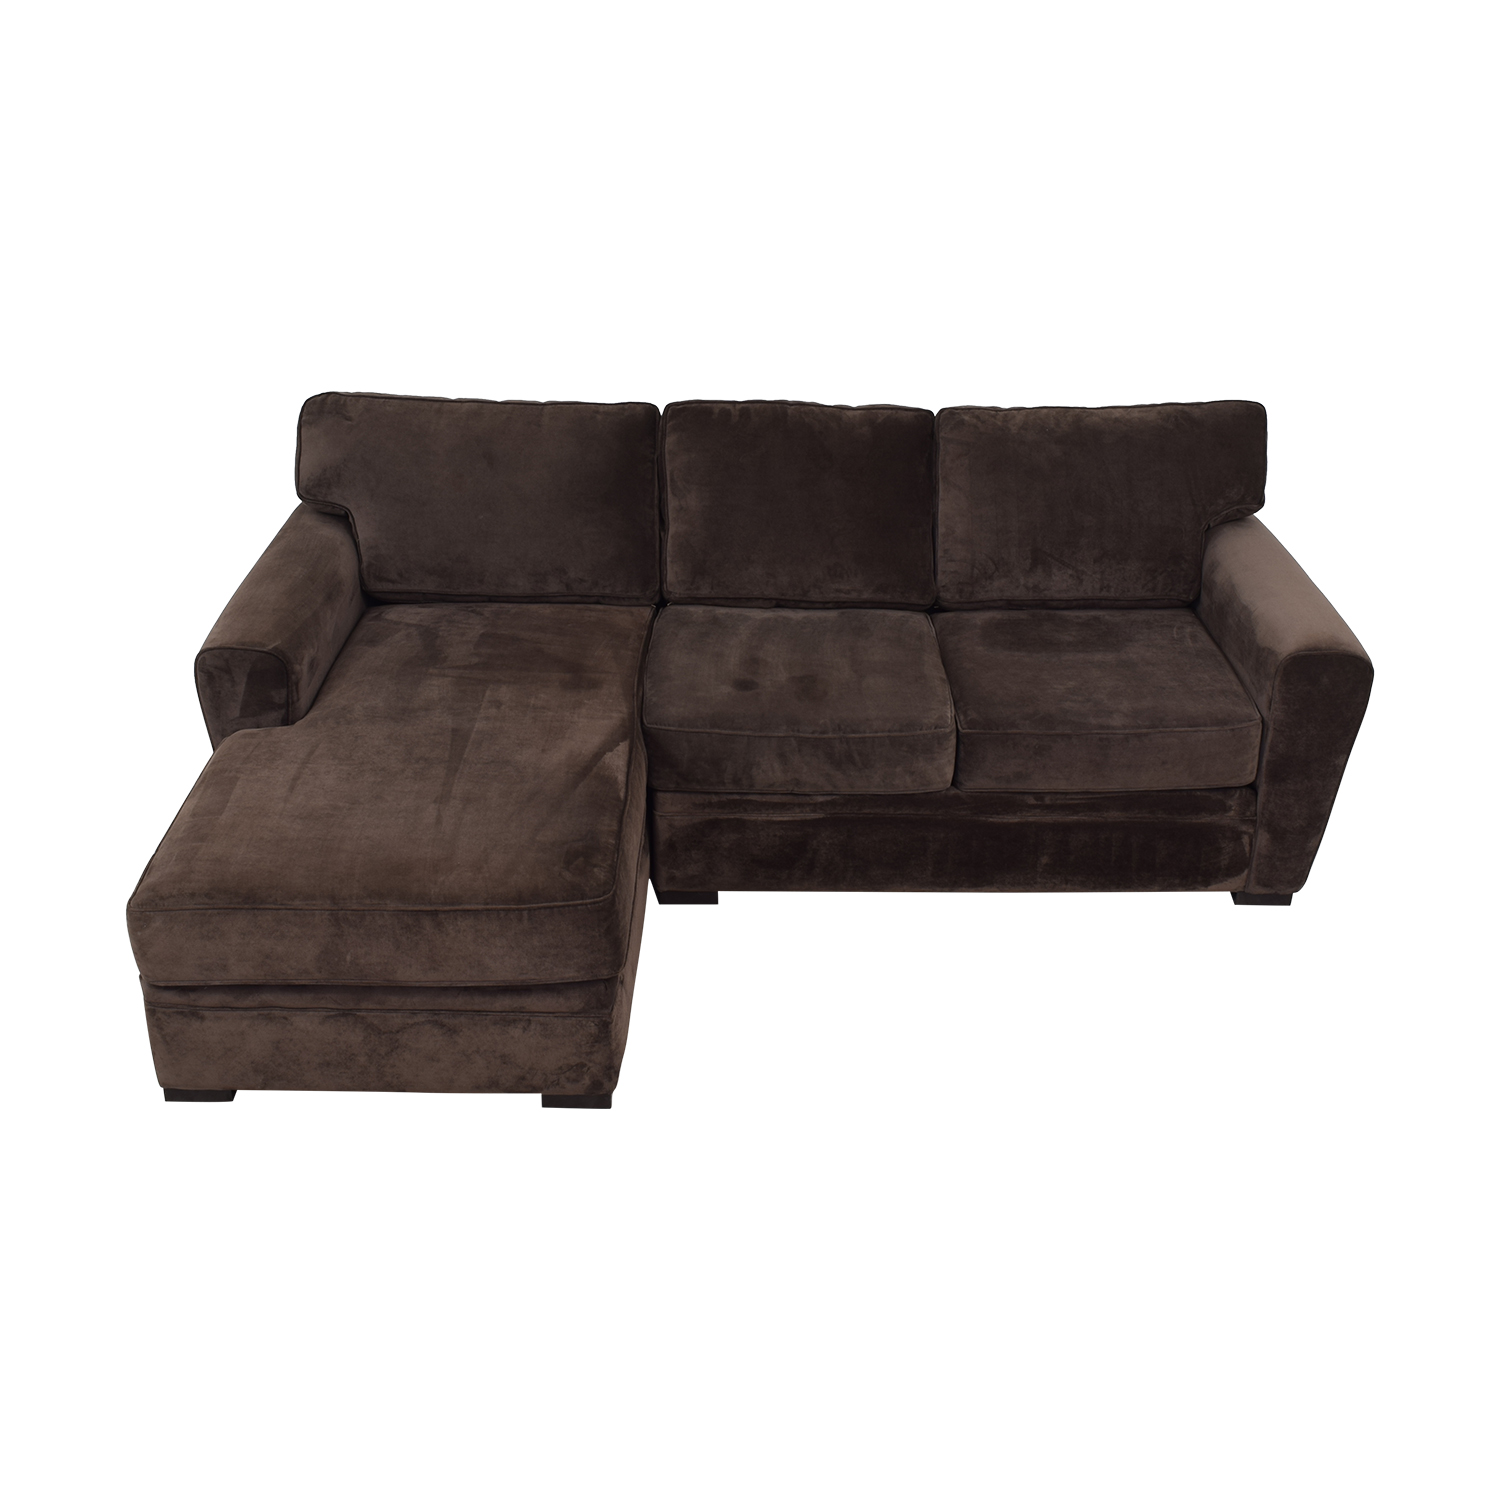 Raymour & Flanigan Artemis II Brown Microfiber Chaise Sectional / Sectionals